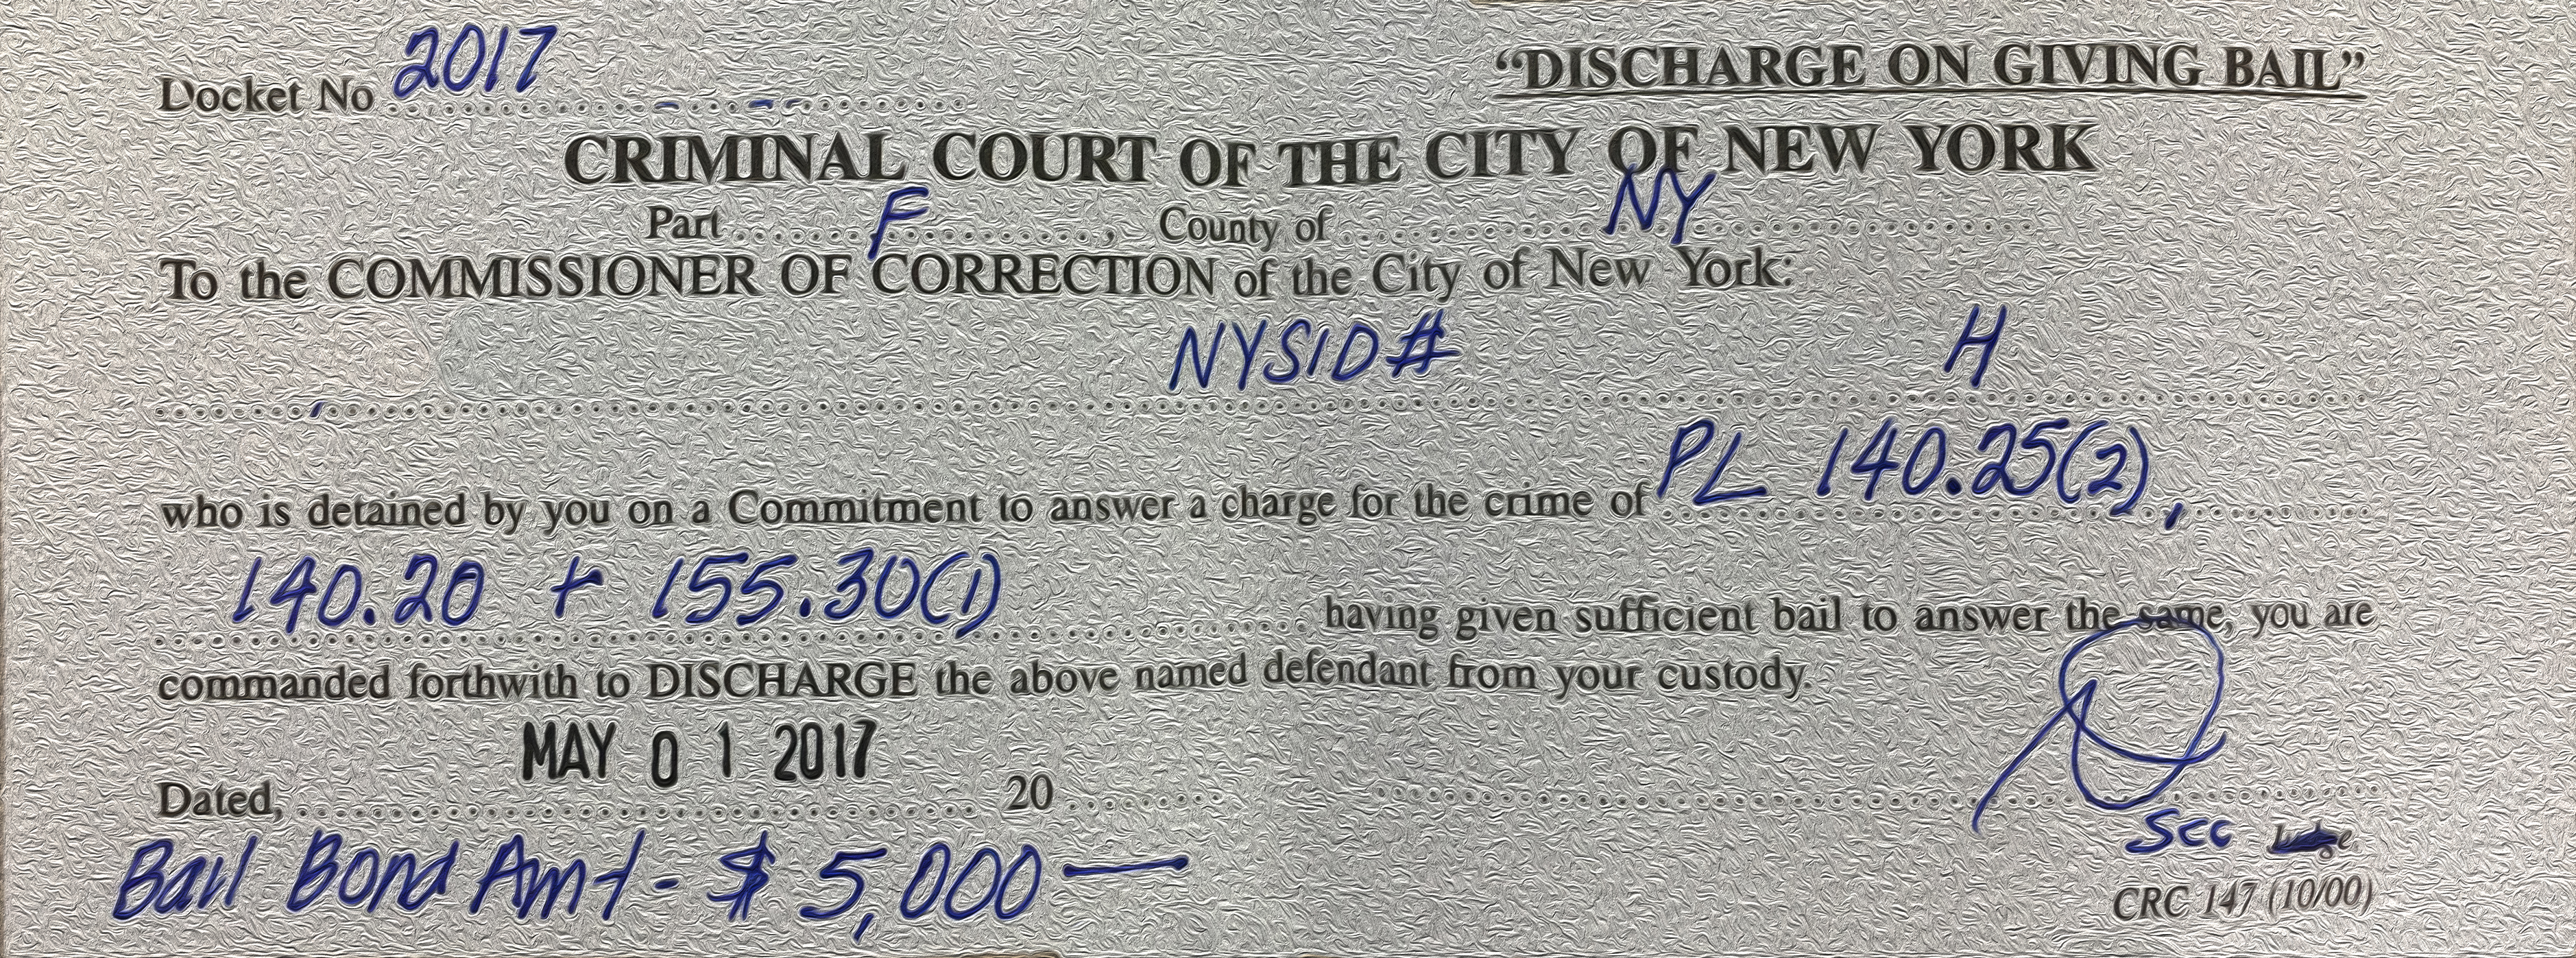 How Long Does Inmate Release Take in NYC?